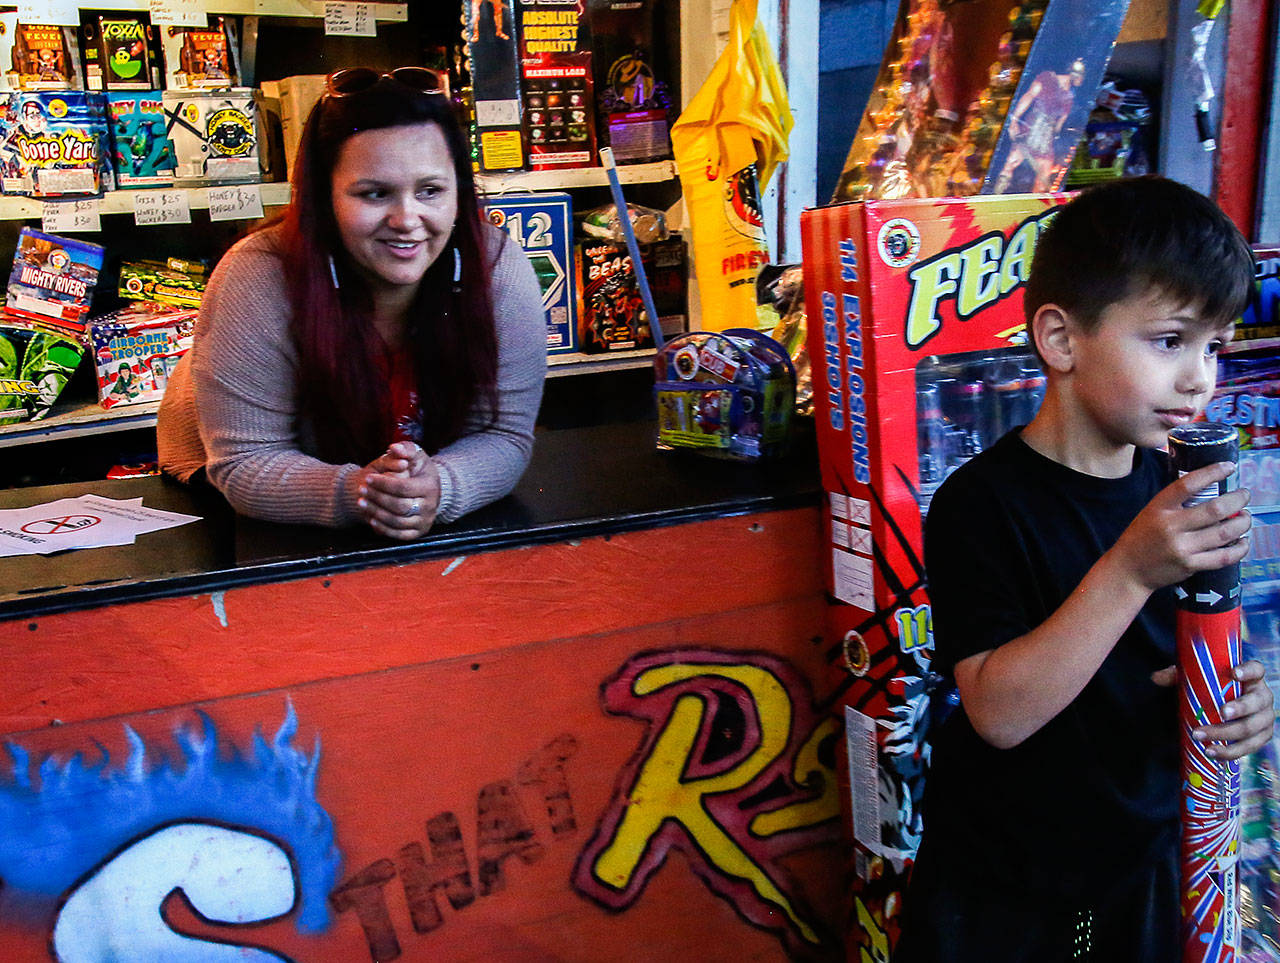 Eliza Davis, 37, smiles as she watches her 6-year-old nephew, Micah Thornberry, take a confetti blaster she gave him to pop open with another youngster outside her stand, Fireworks that Rock. At 10, Davis began selling fireworks with her parents. She now serves on the tribes' Boom City Committee. (Dan Bates / The Herald)